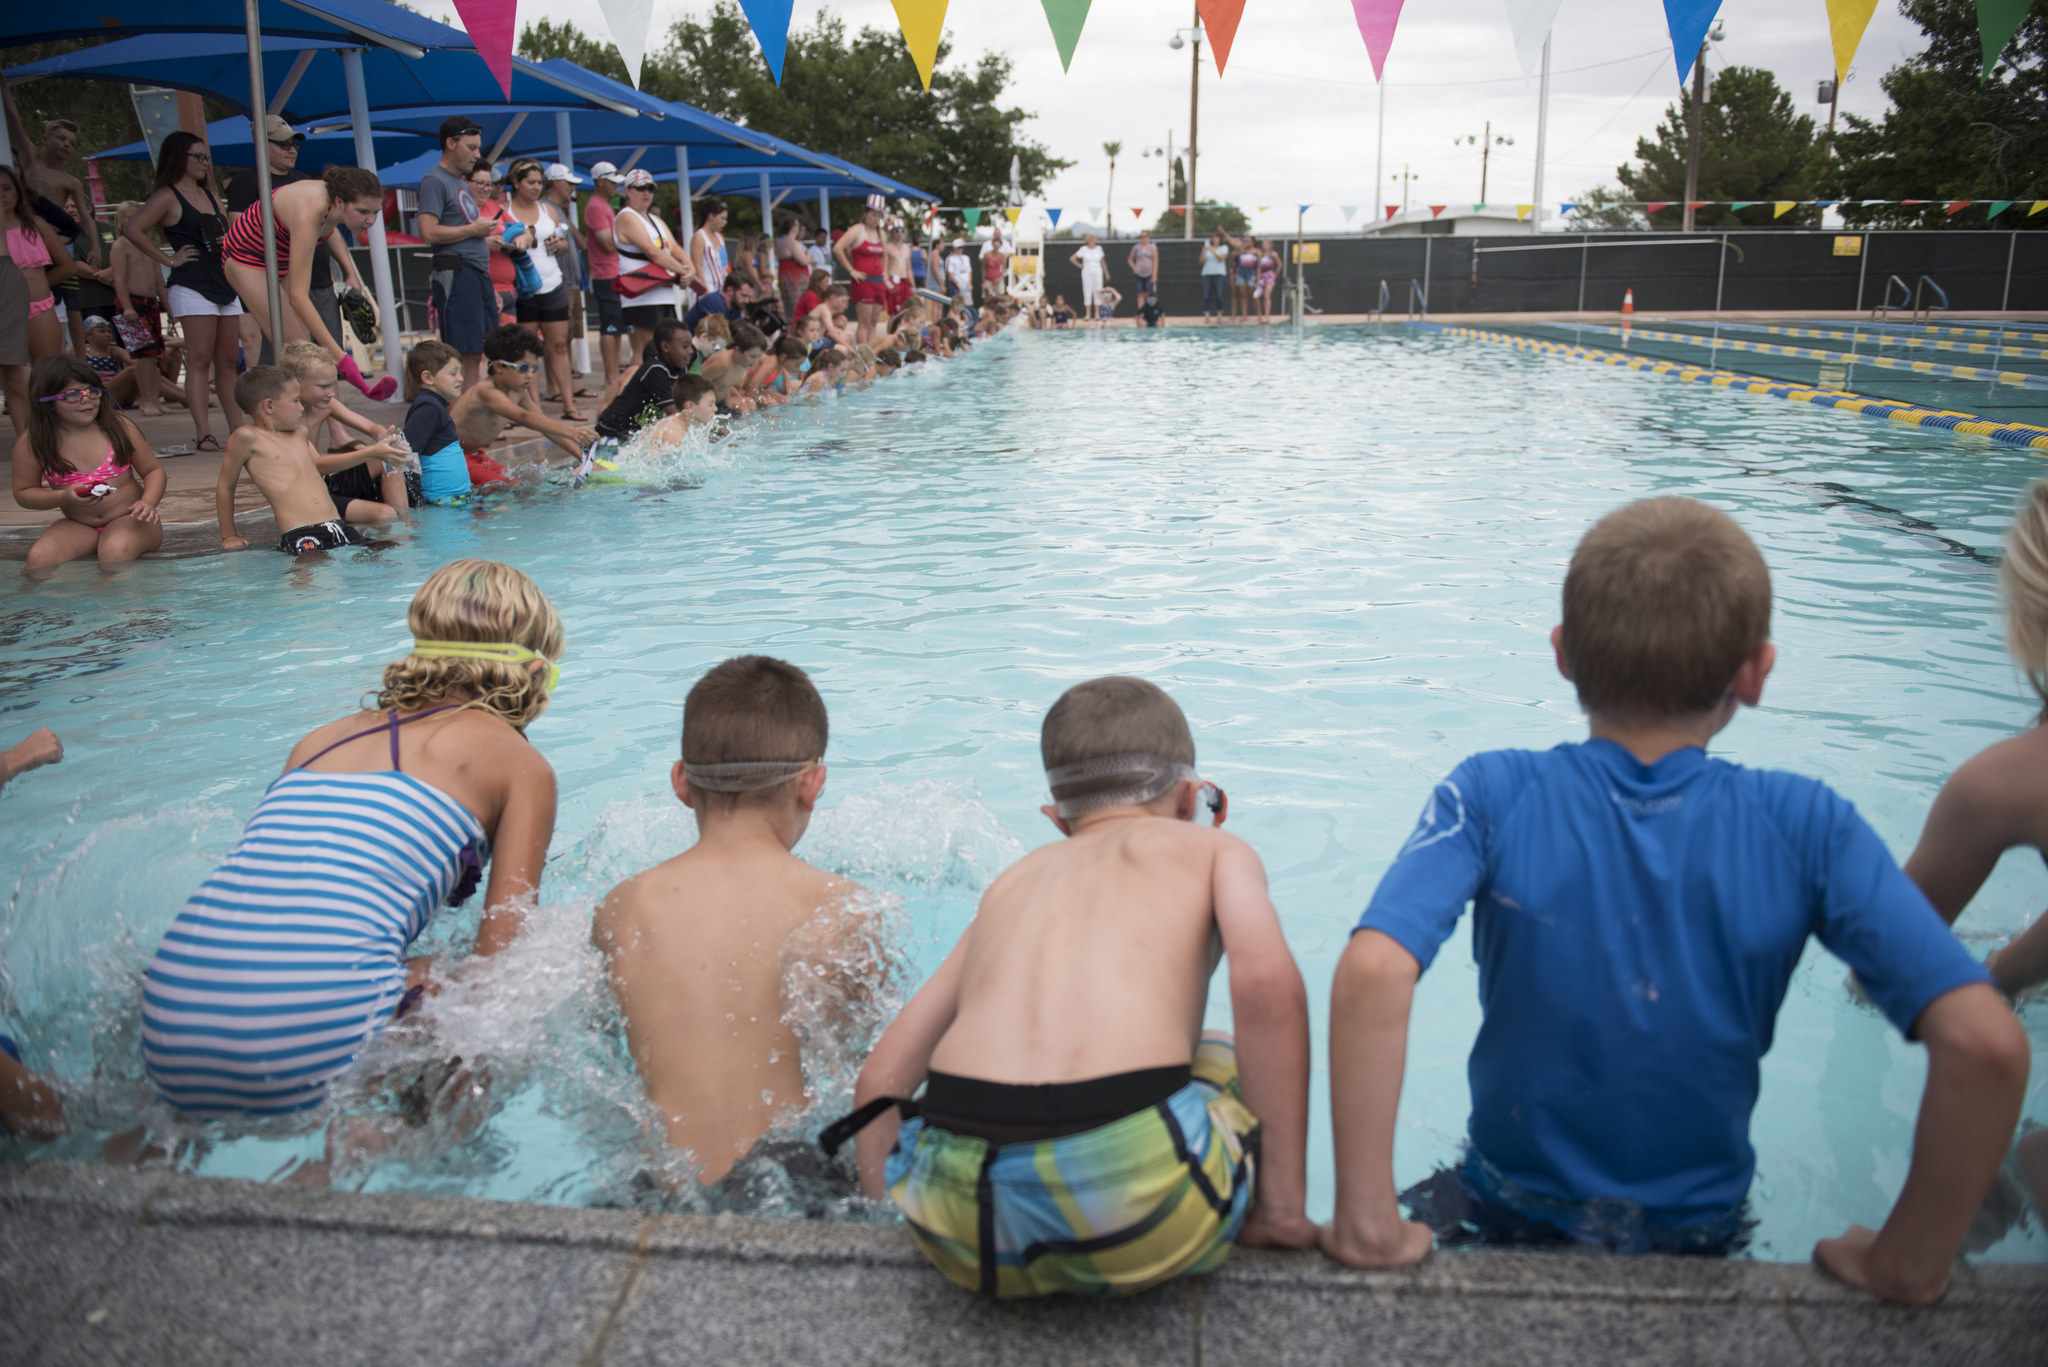 The 9 years old and under league slides into the pool at Broadbent Park Pool for the coin dive during the 67th Annual Boulder City Damboree Celebration in Boulder City, Saturday, July 4, 2015.(JASON OGULNIK/BOULDER CITY REVIEW)